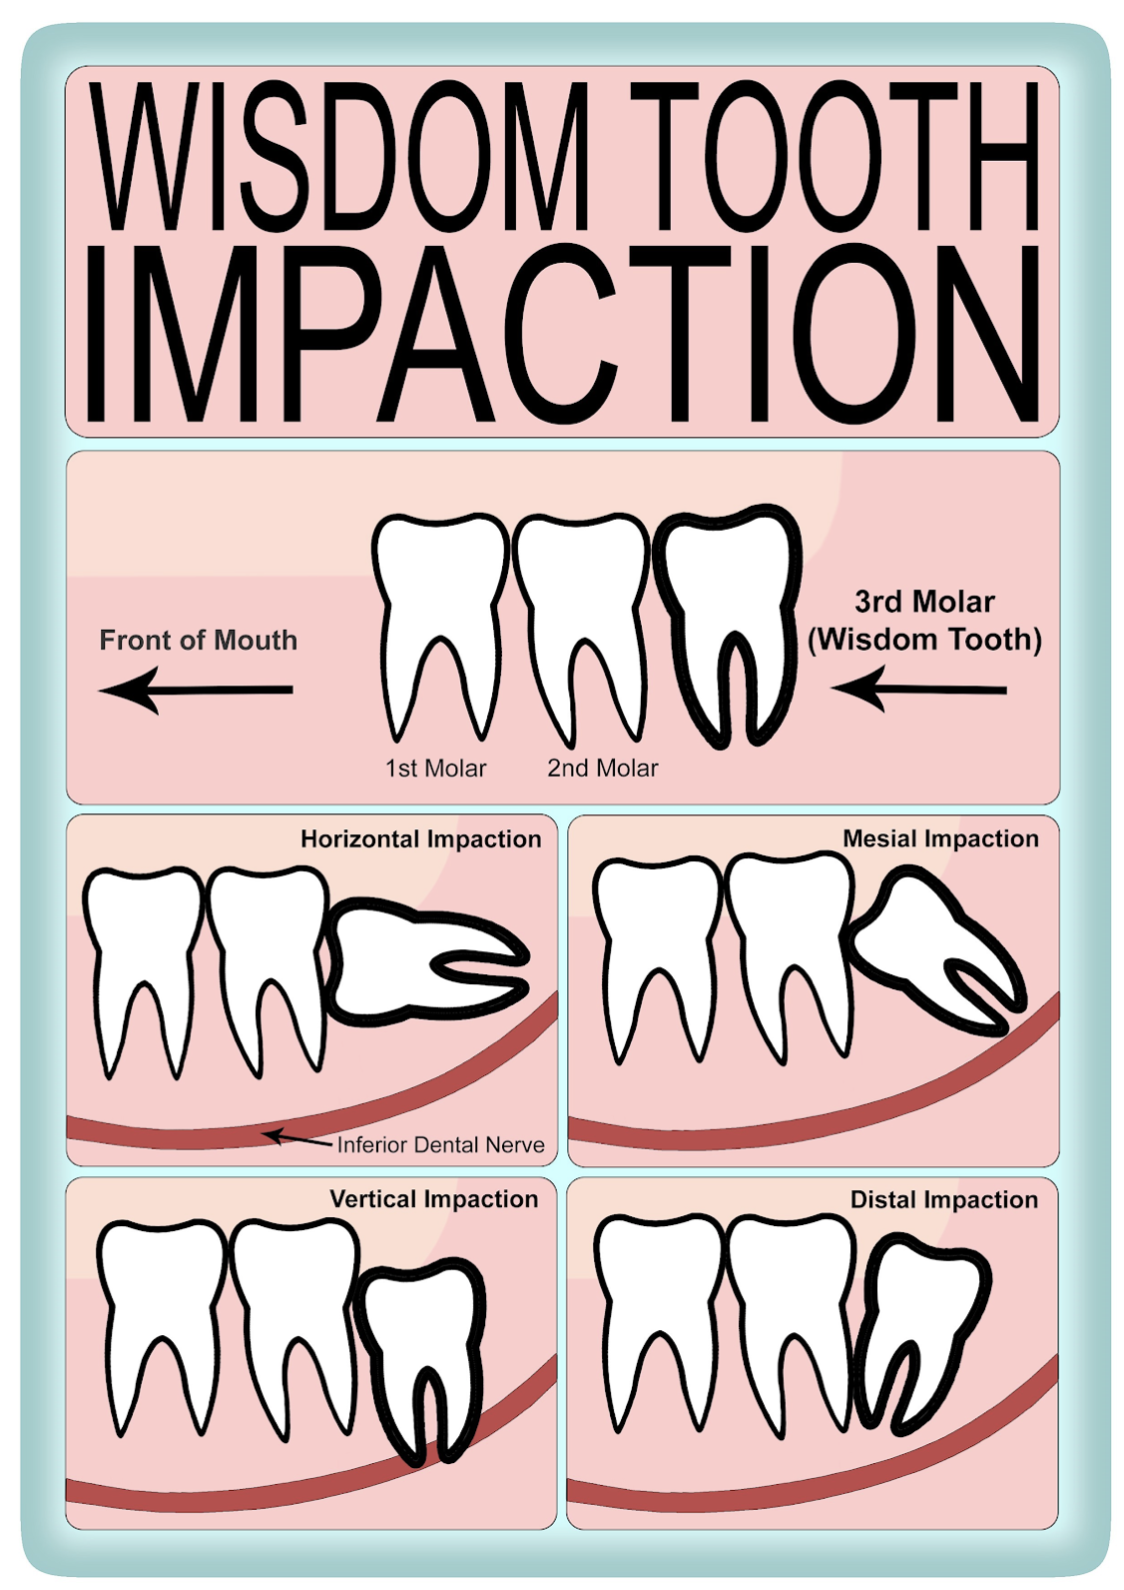 Wisdom tooth impaction, adapted from British Association of Oral & Maxillofacial Surgeons